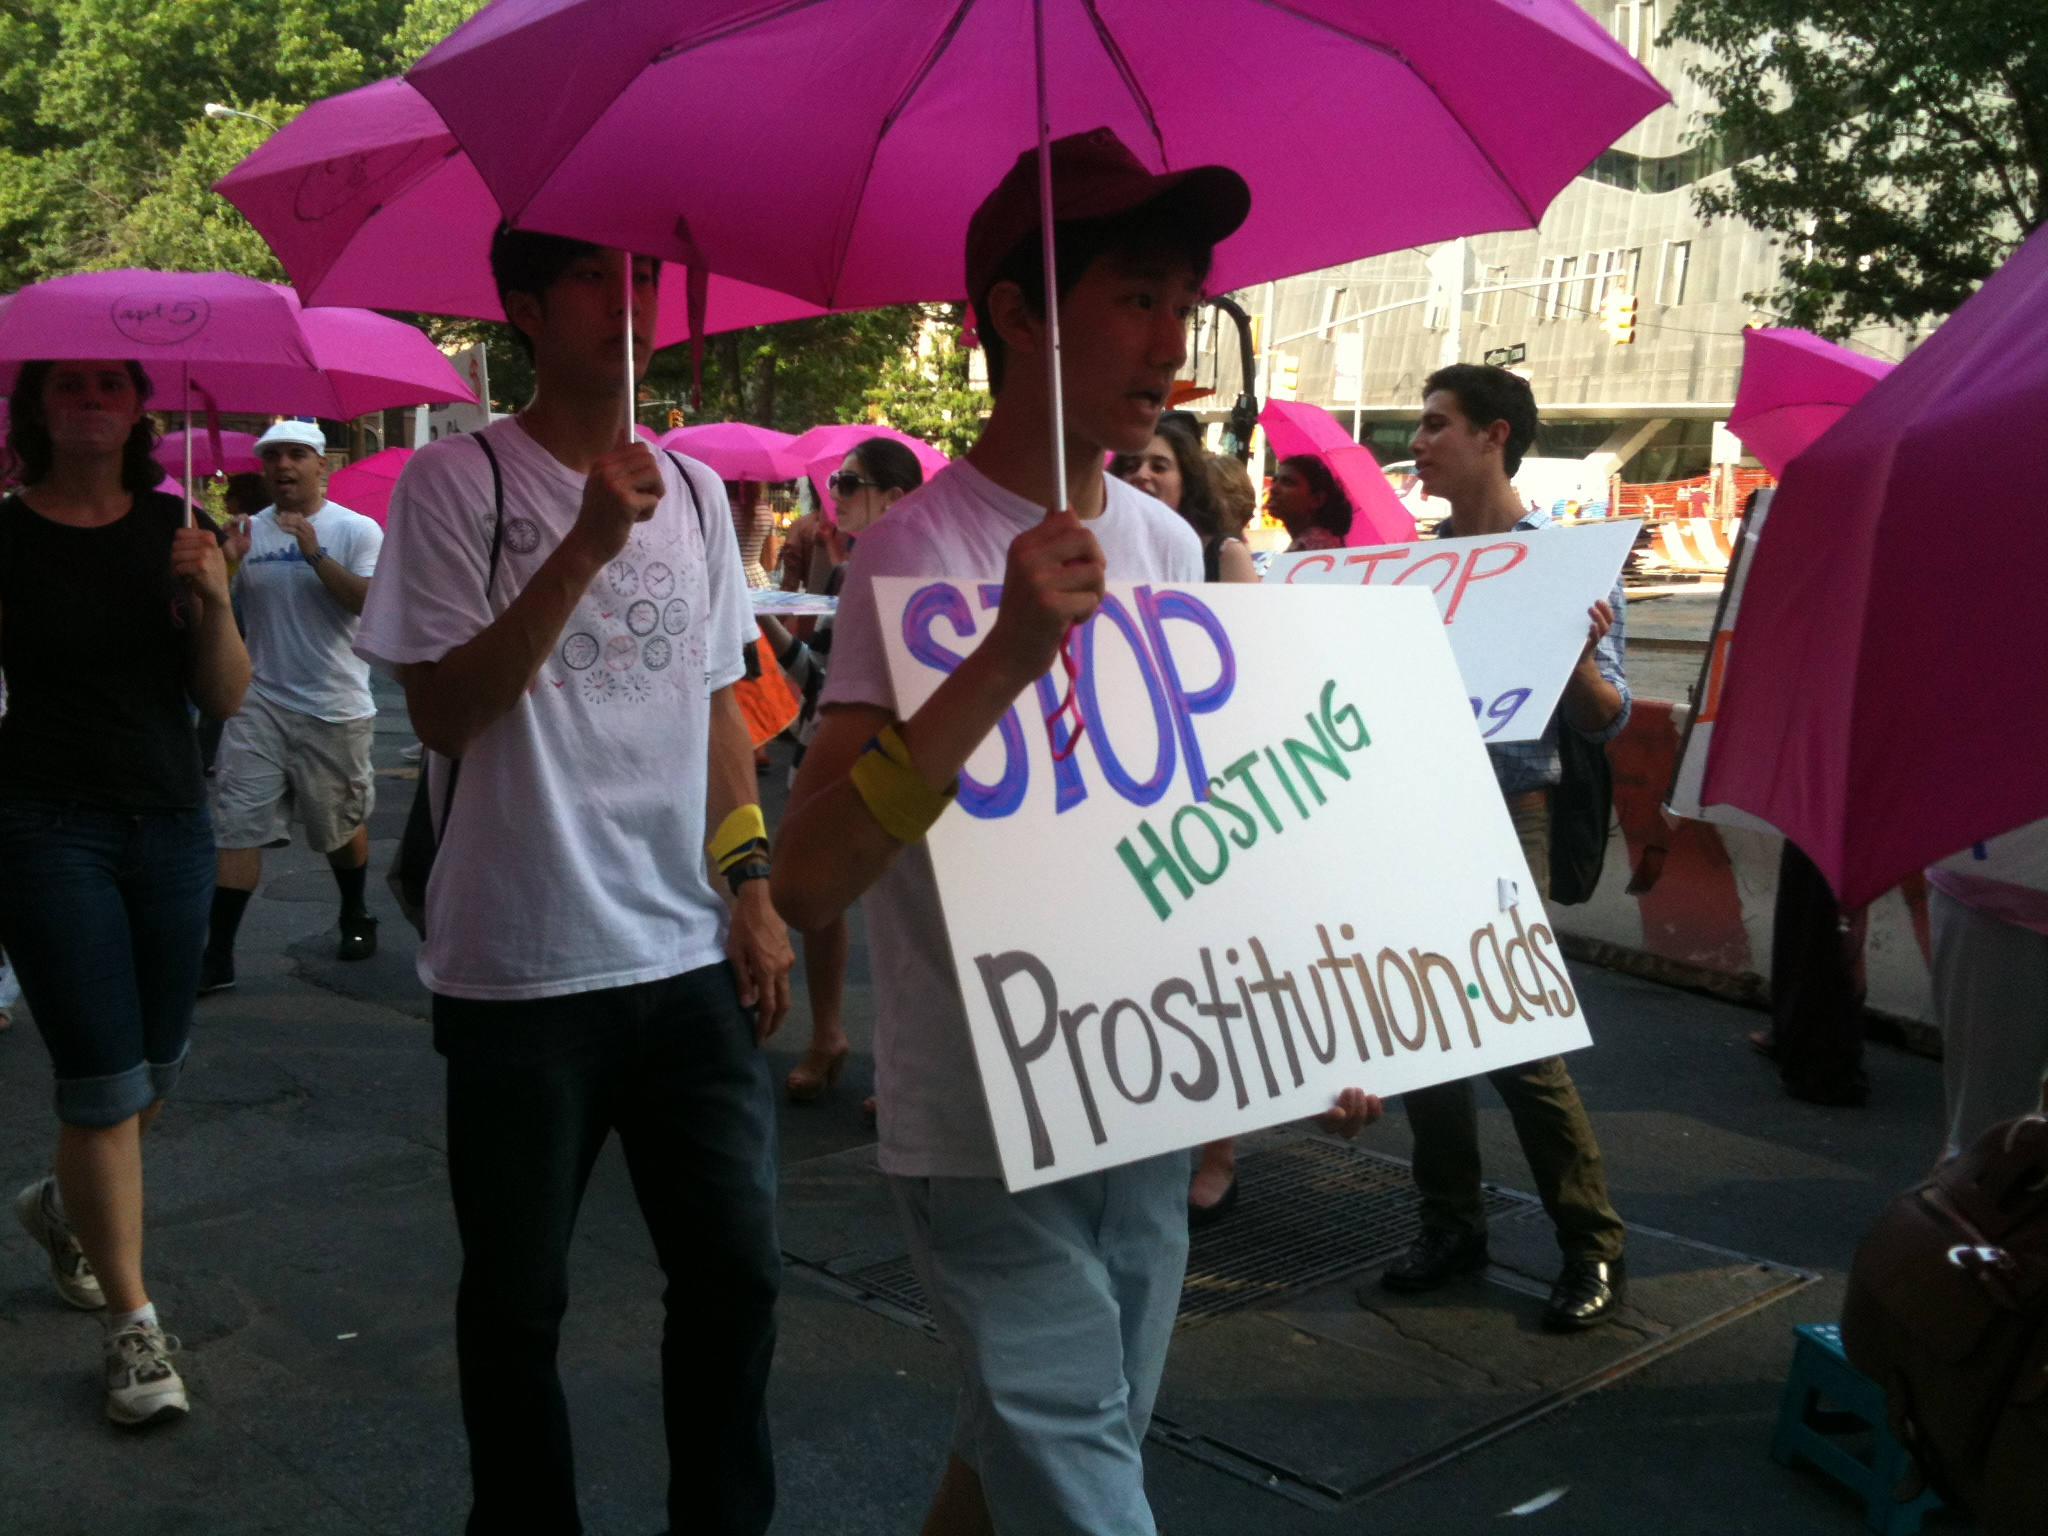 Protestors with pink umbrellas and sign reading